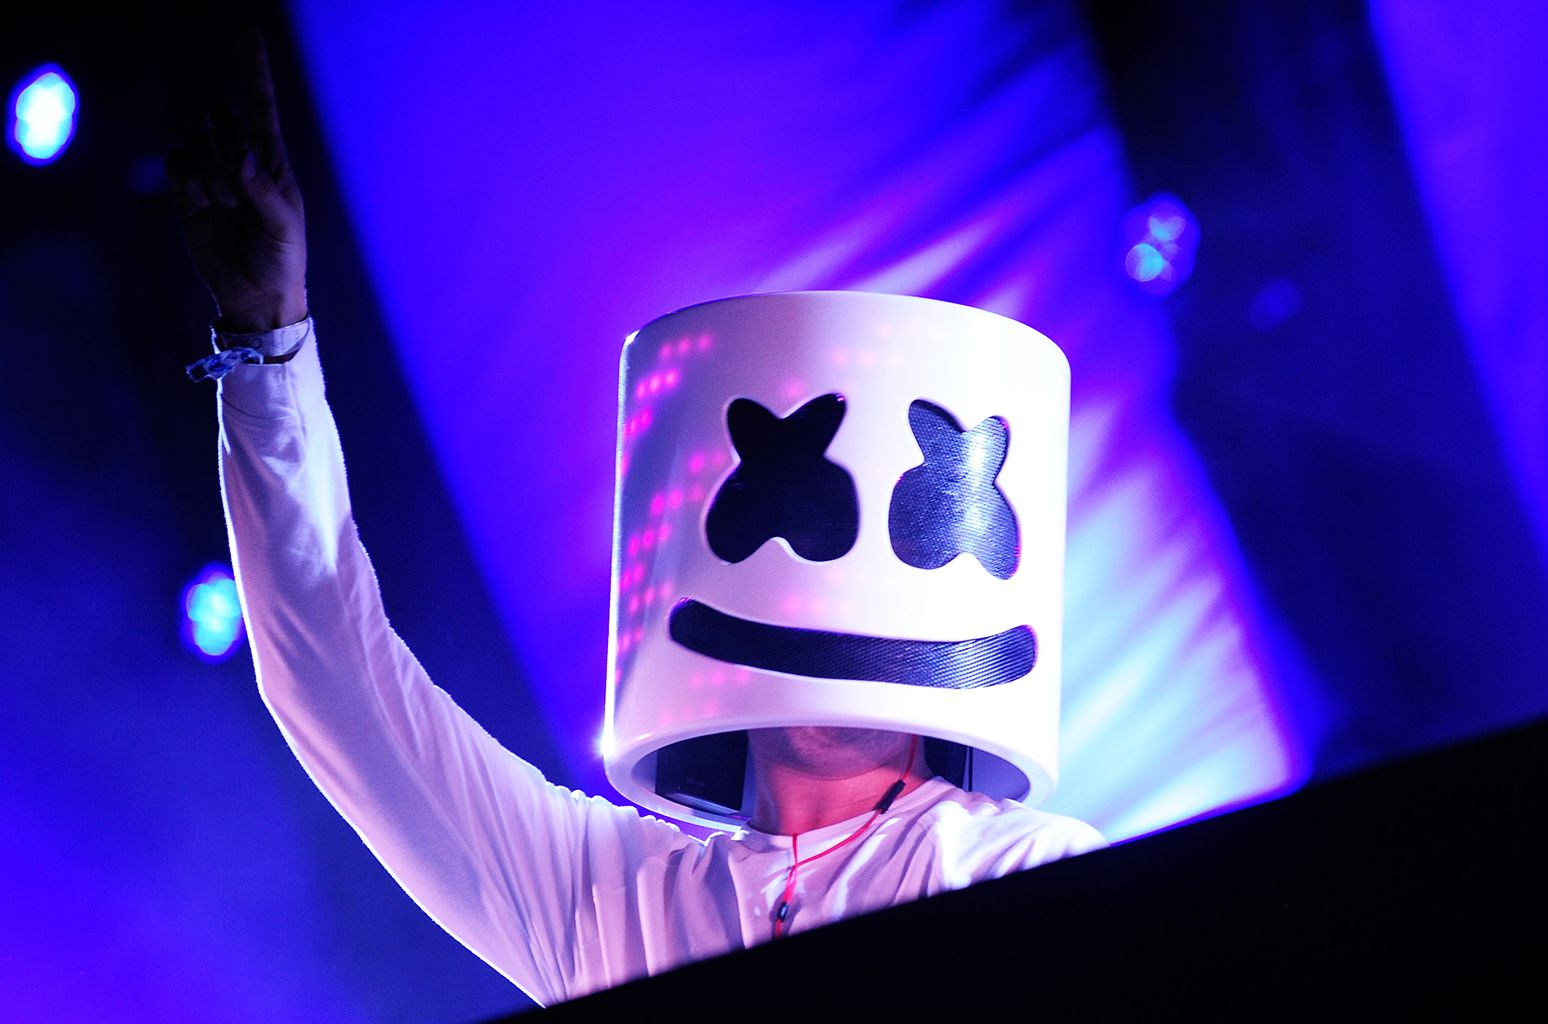 Marshmello Wallpaper Marshmallow pictures, Disney phone